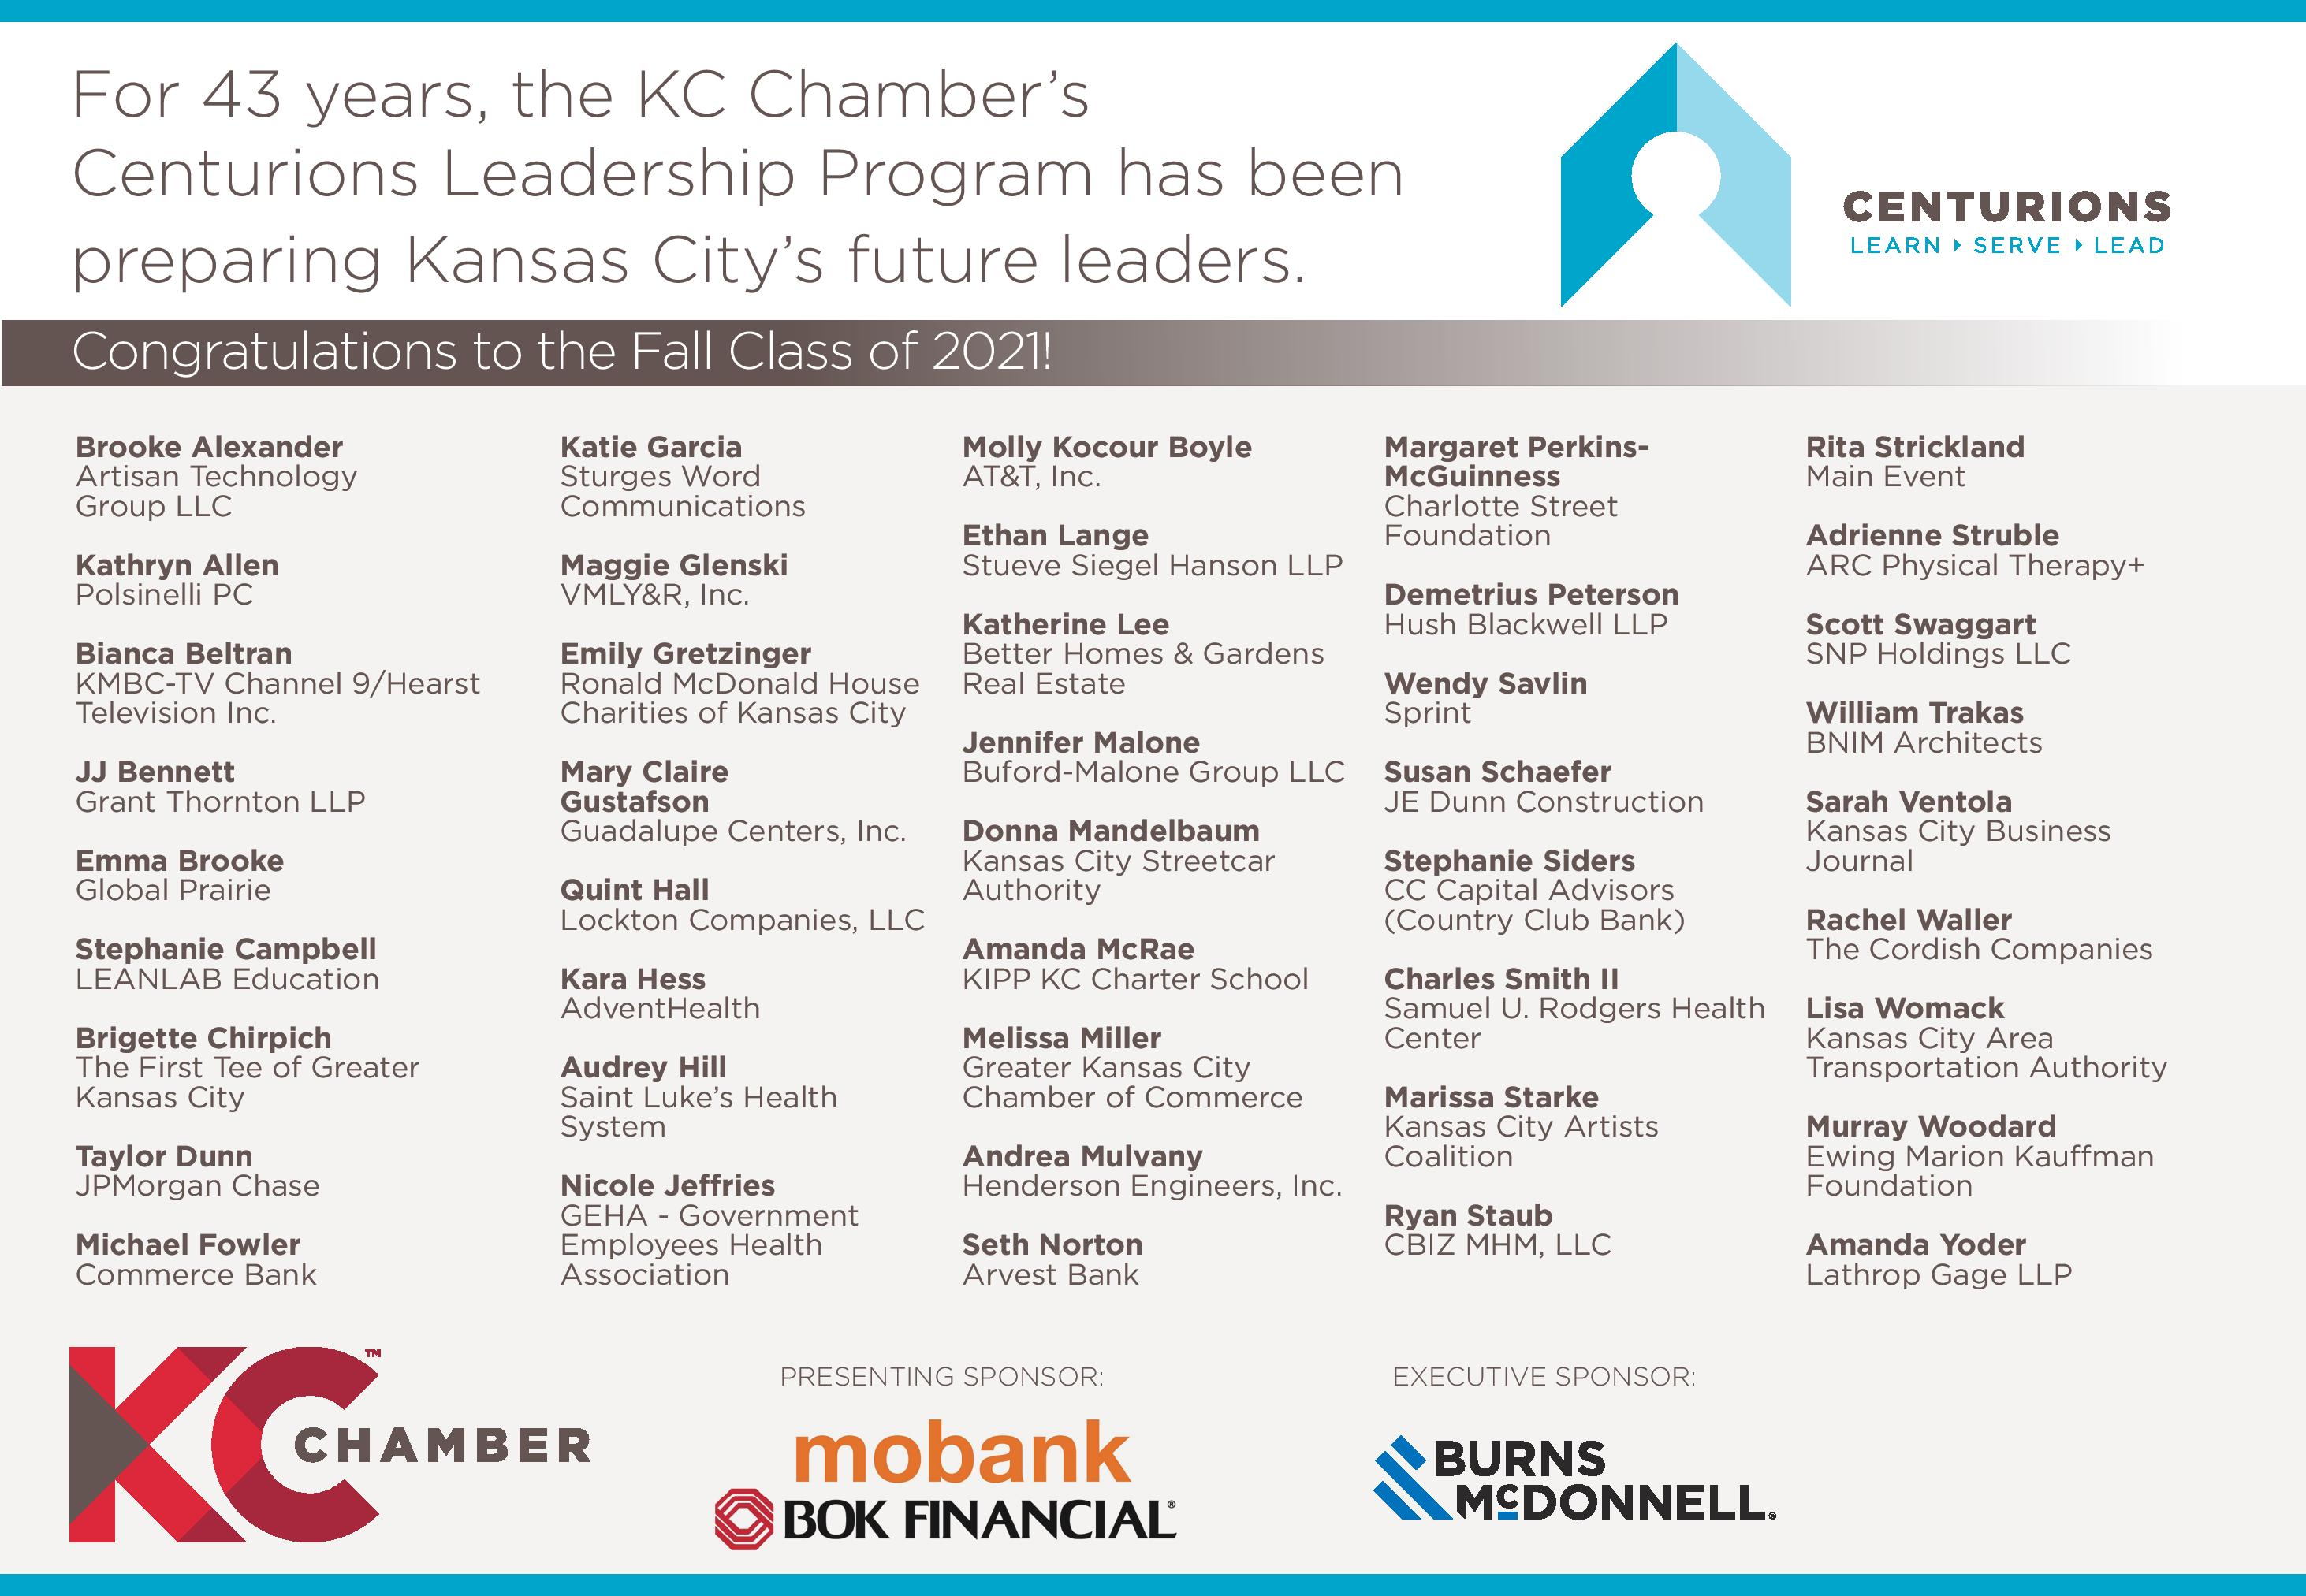 Centurions NOW July 15 2019 | Greater Kansas City Chamber of Commerce